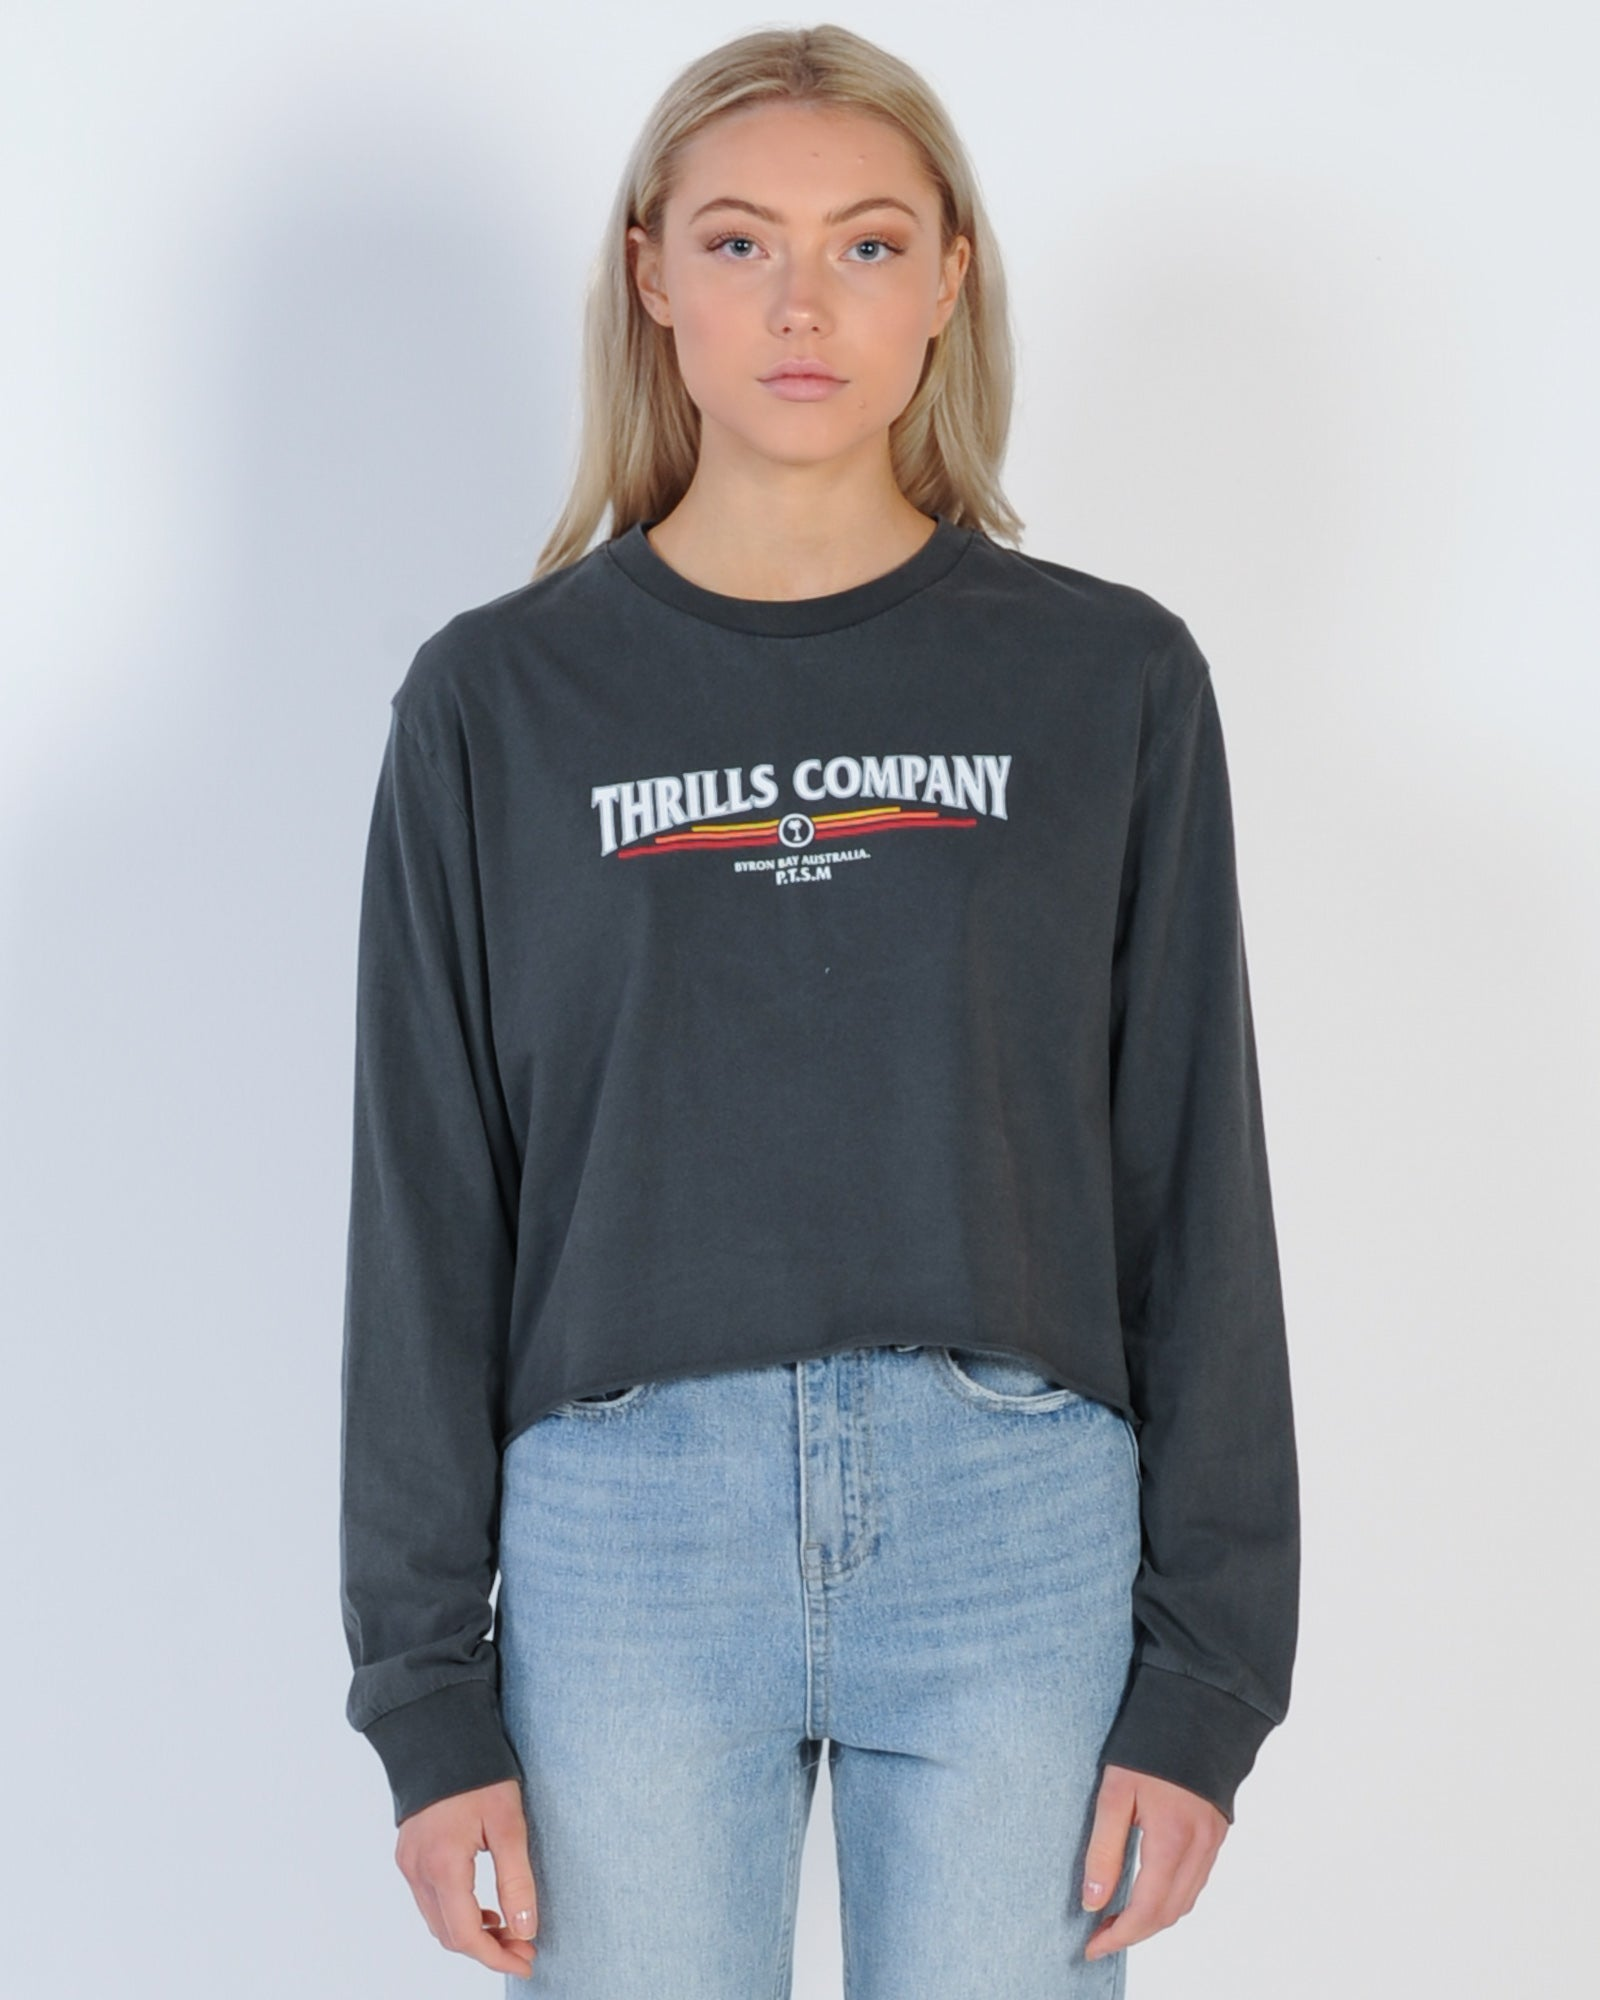 Thrills Redline L/S Crop Tee - Merch Black